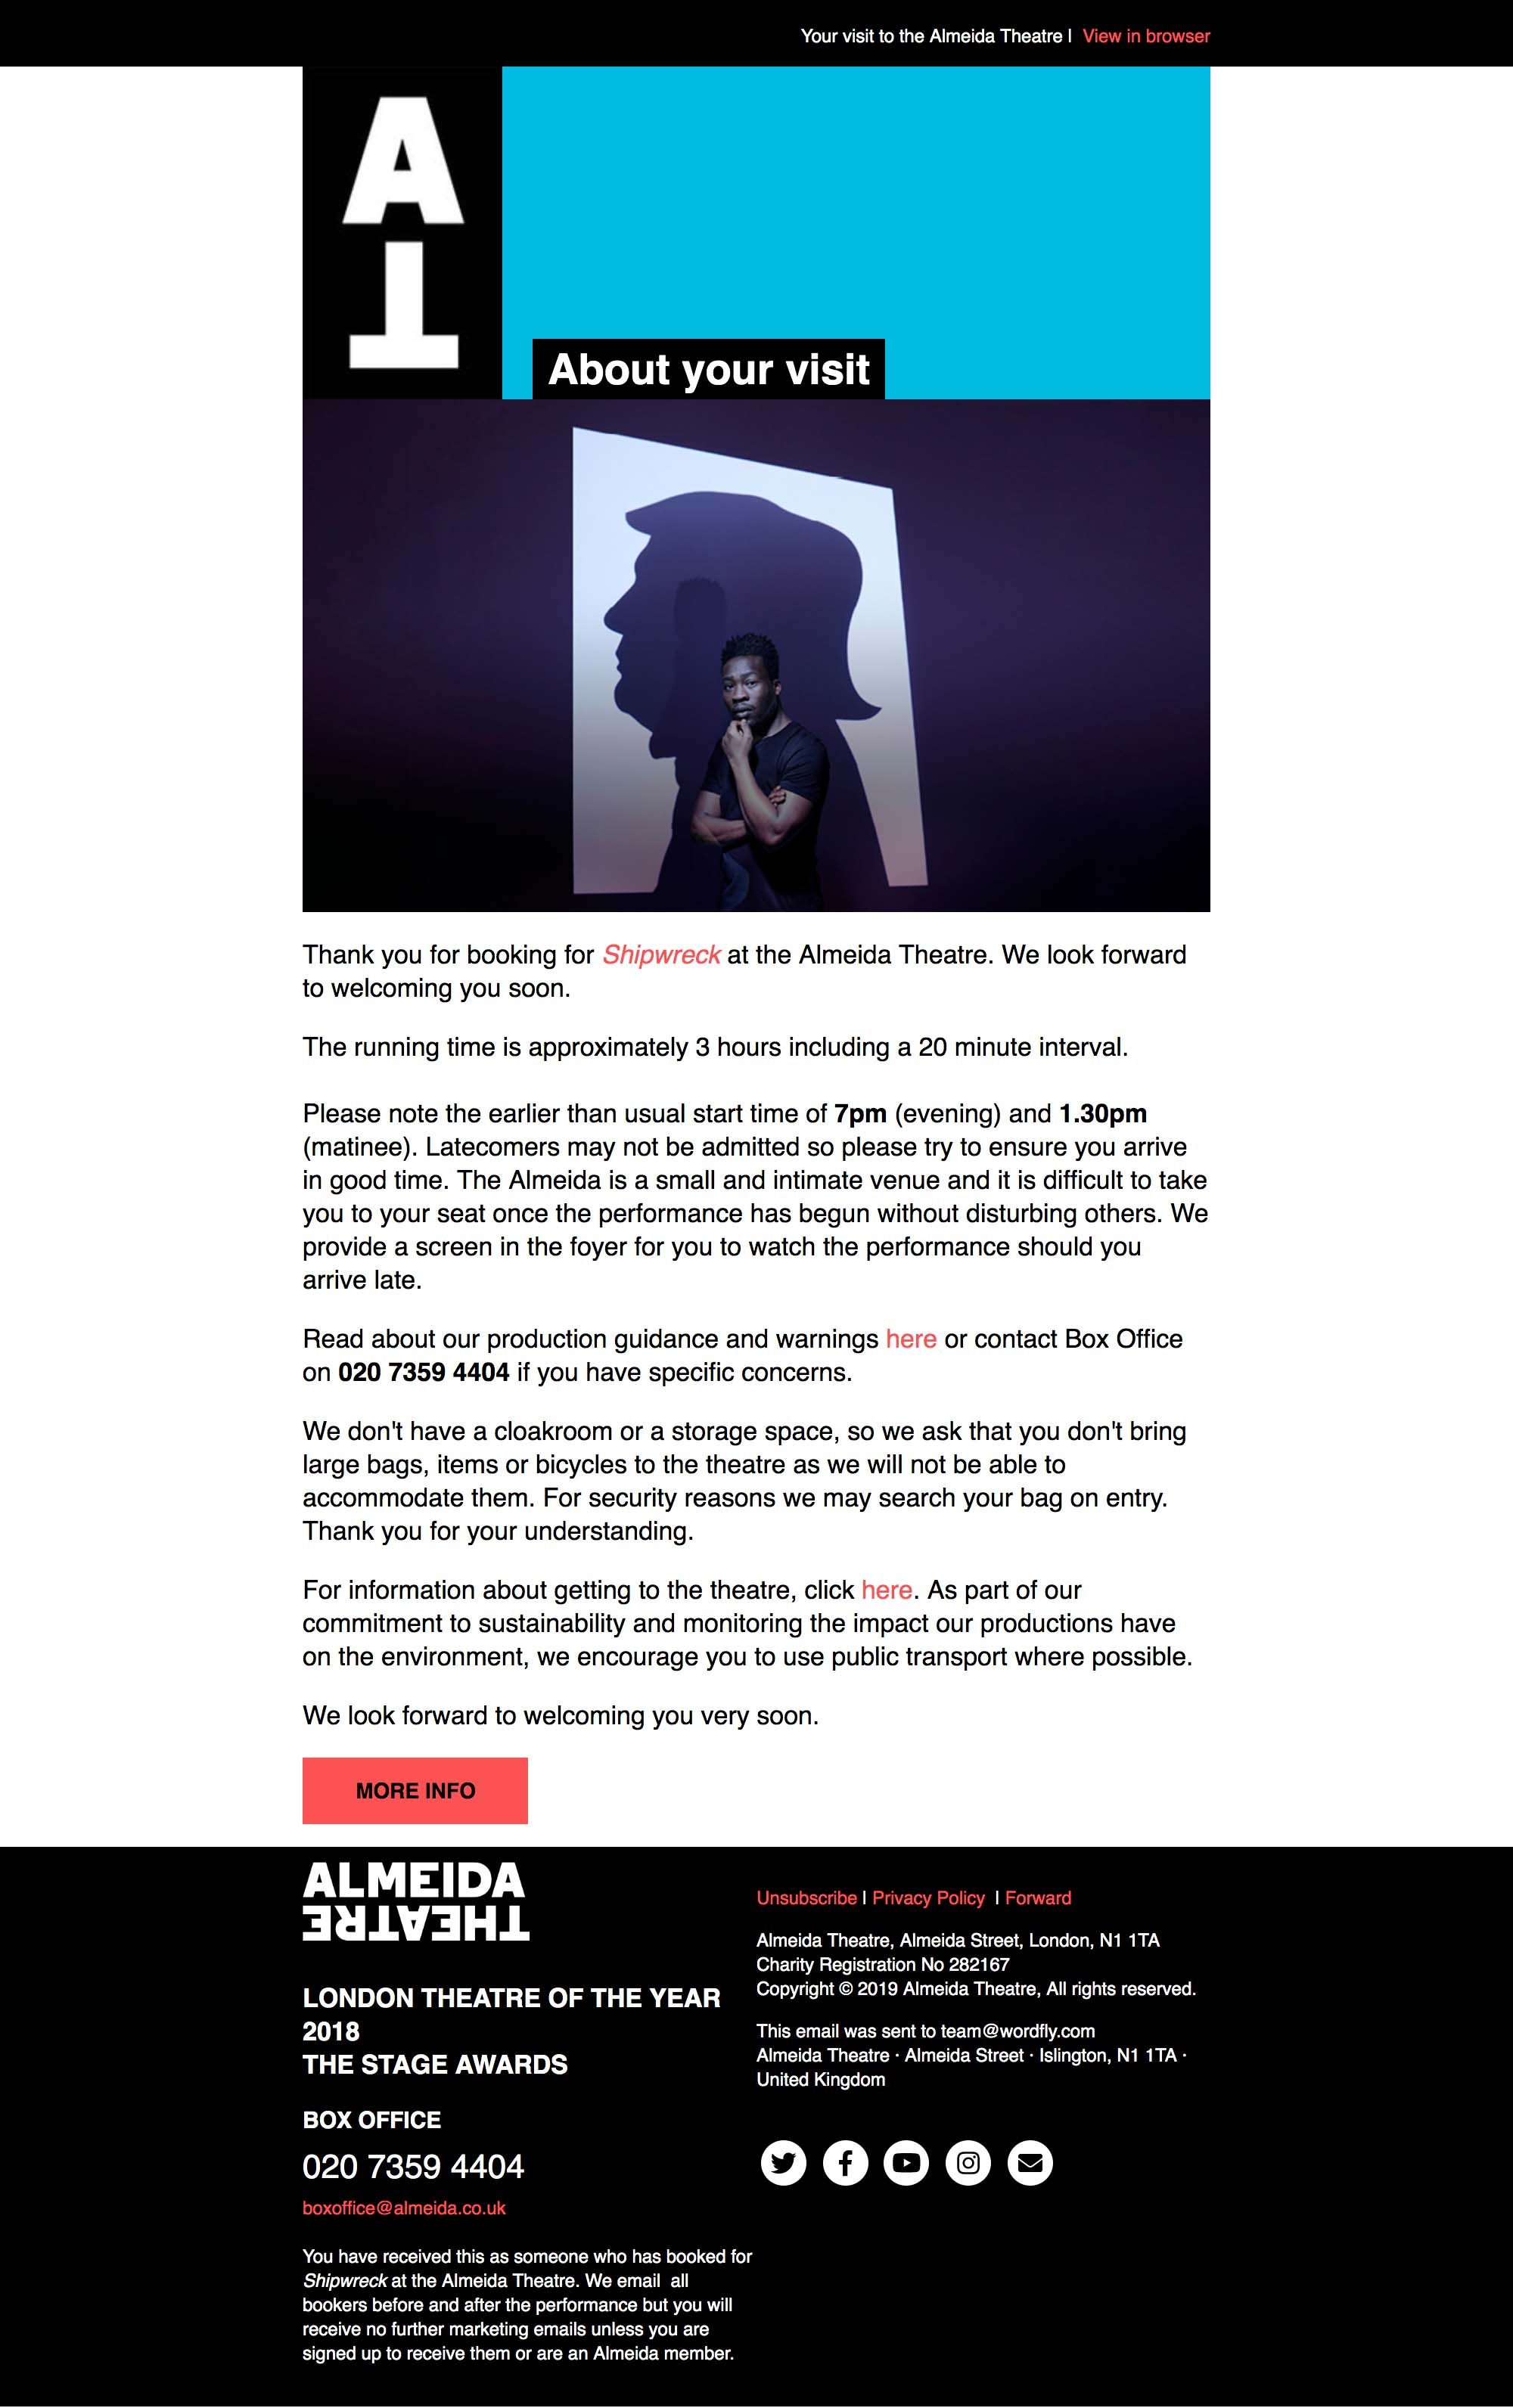 Your upcoming visit to the Almeida Theatre - desktop view